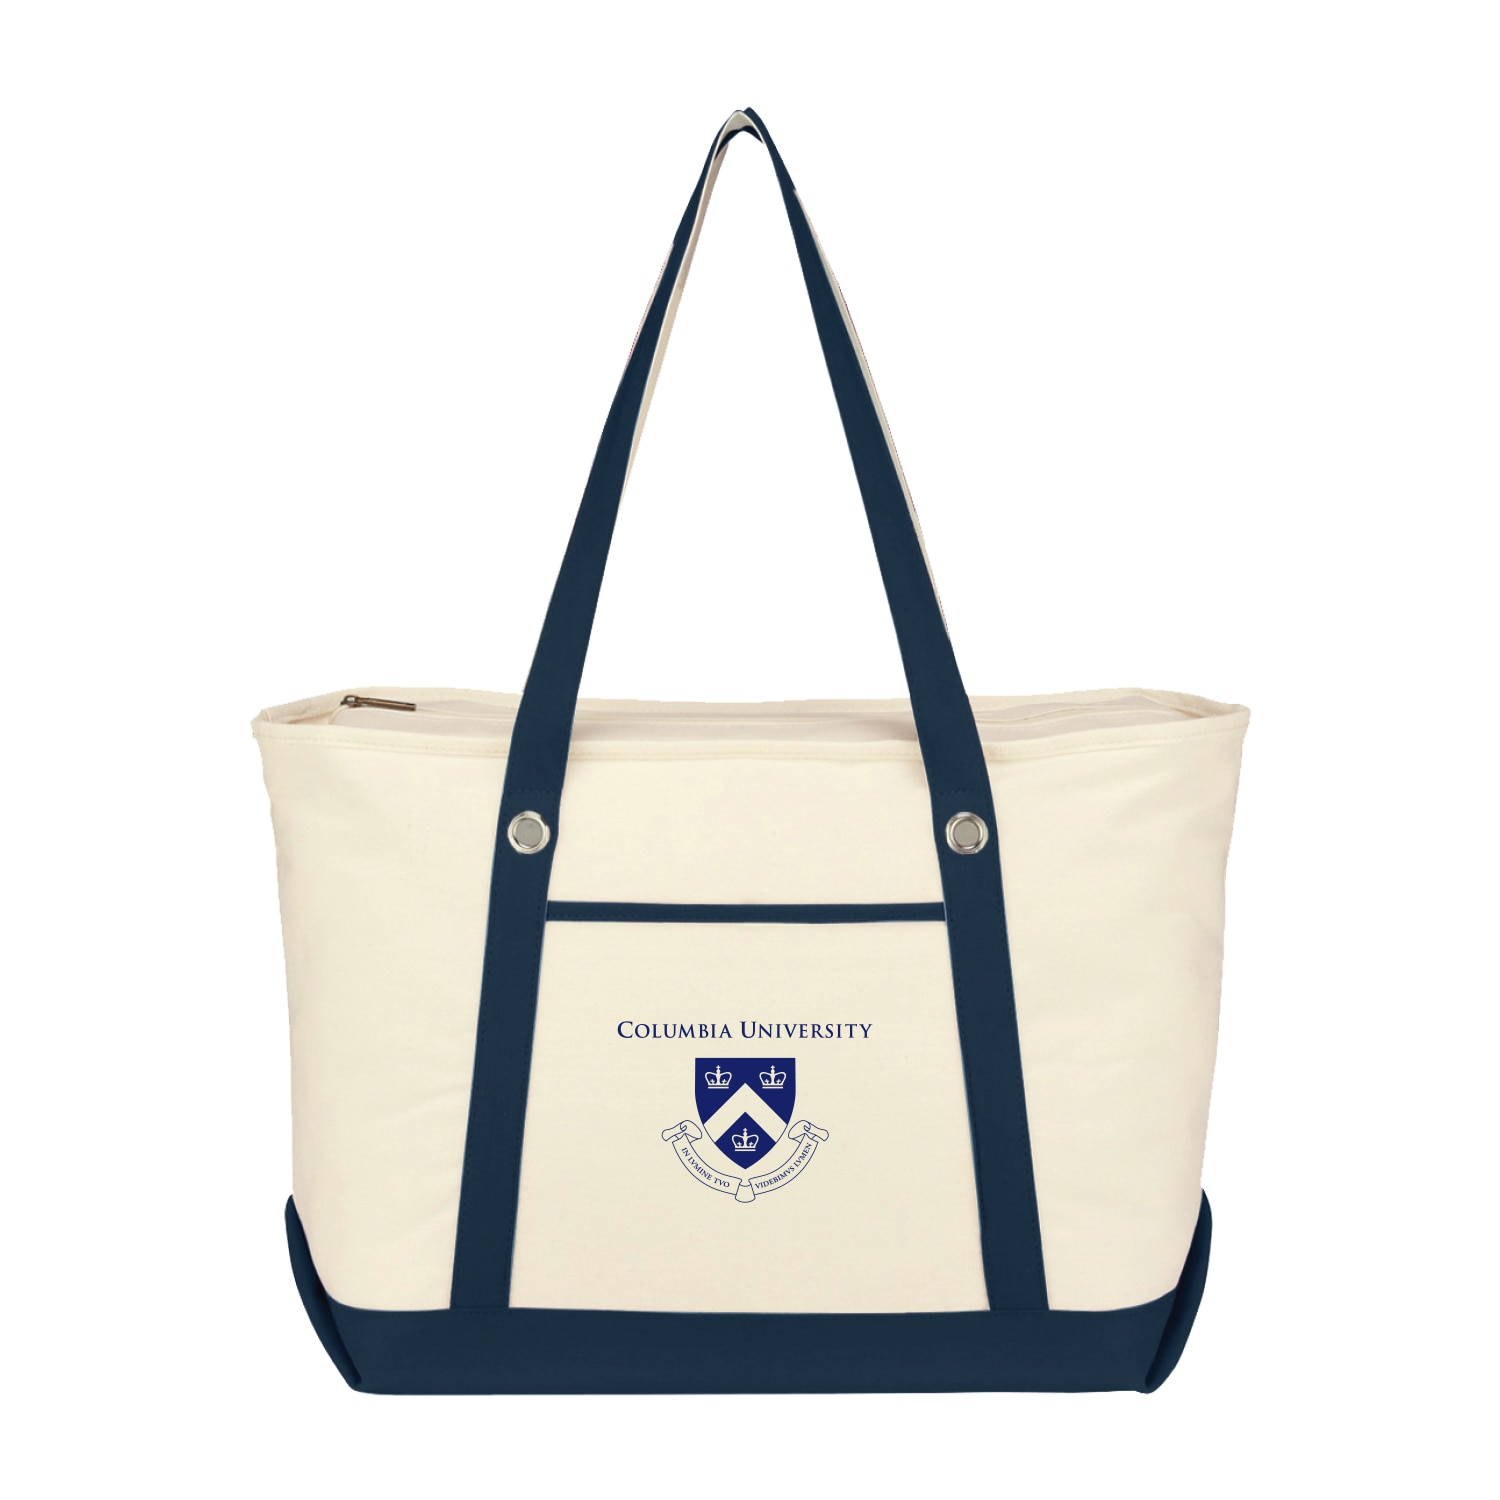 Columbia University Large Canvas Boat Tote